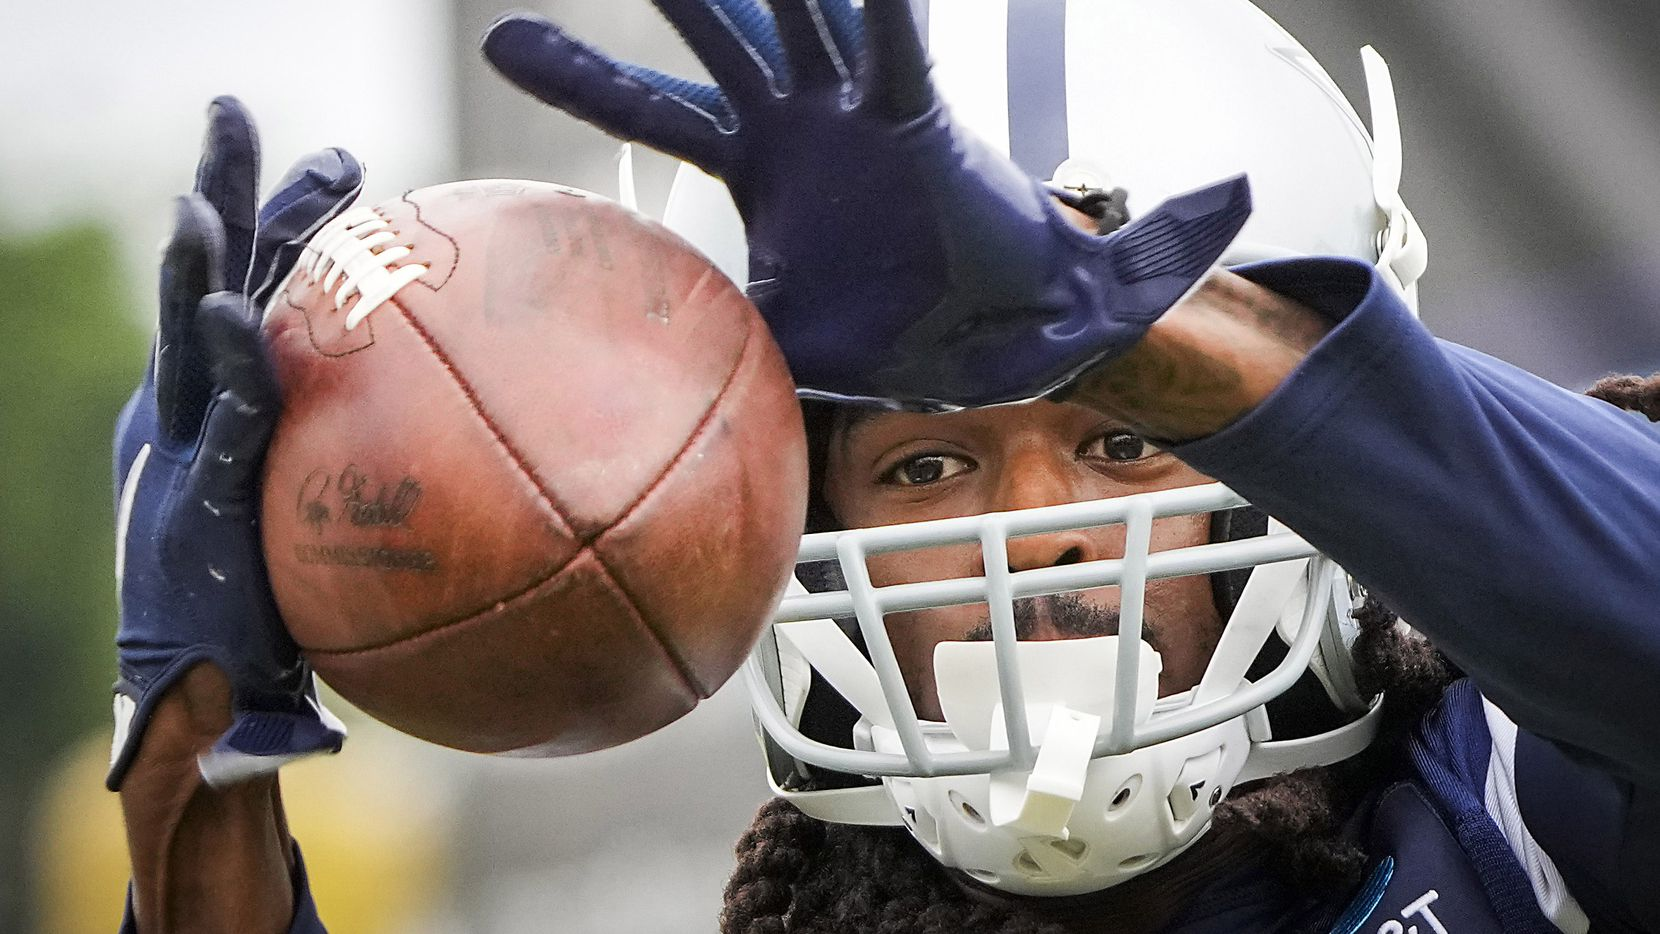 Dallas Cowboys cornerback Maurice Canady catches a ball during drill at training camp on Sunday, July 25, 2021, in Oxnard, Calif.